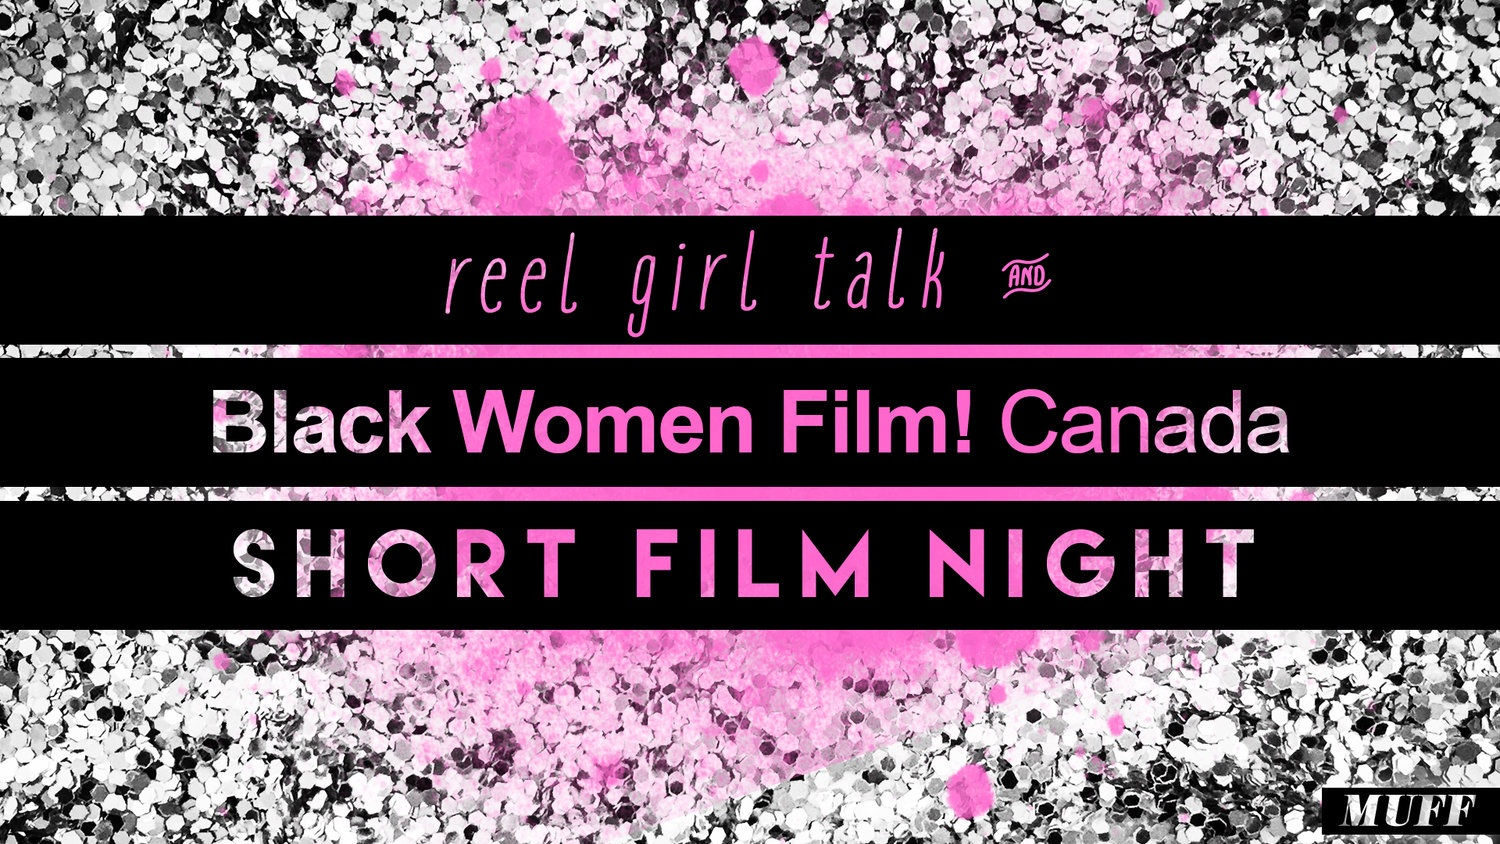 RGT & BLACK WOMEN FILM! CANADA SHORT FILM NIGHT  November 8, 2017, Carlton Cinema   Black female filmmakers from across Canada were invited to submit their short films for consideration.